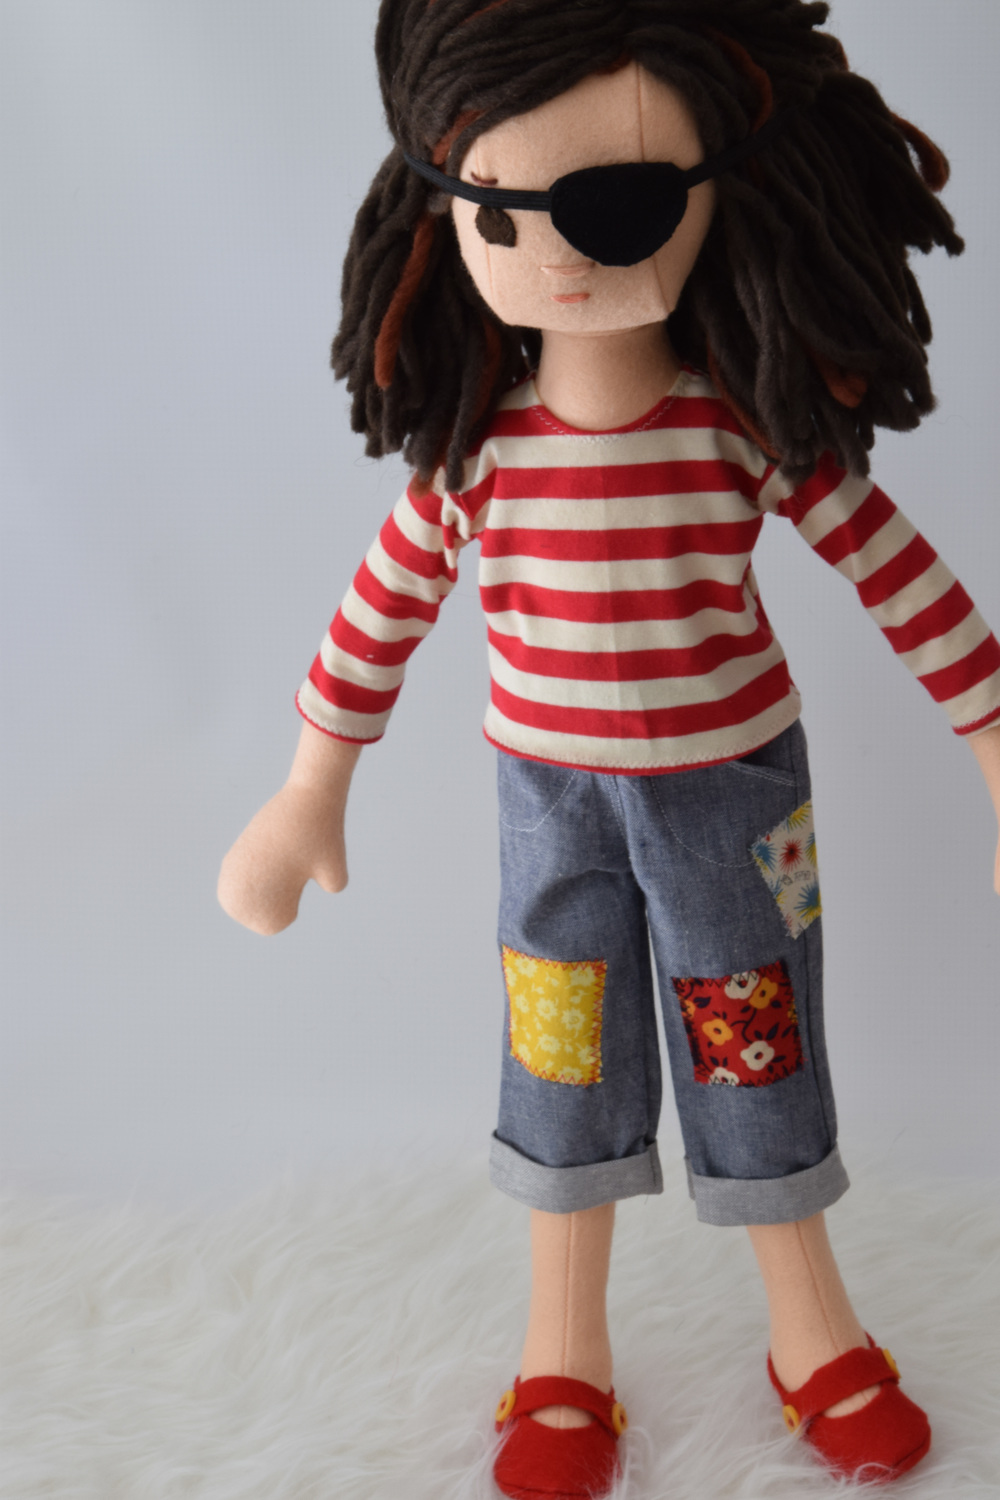 The Handmade Dolls-643.jpg